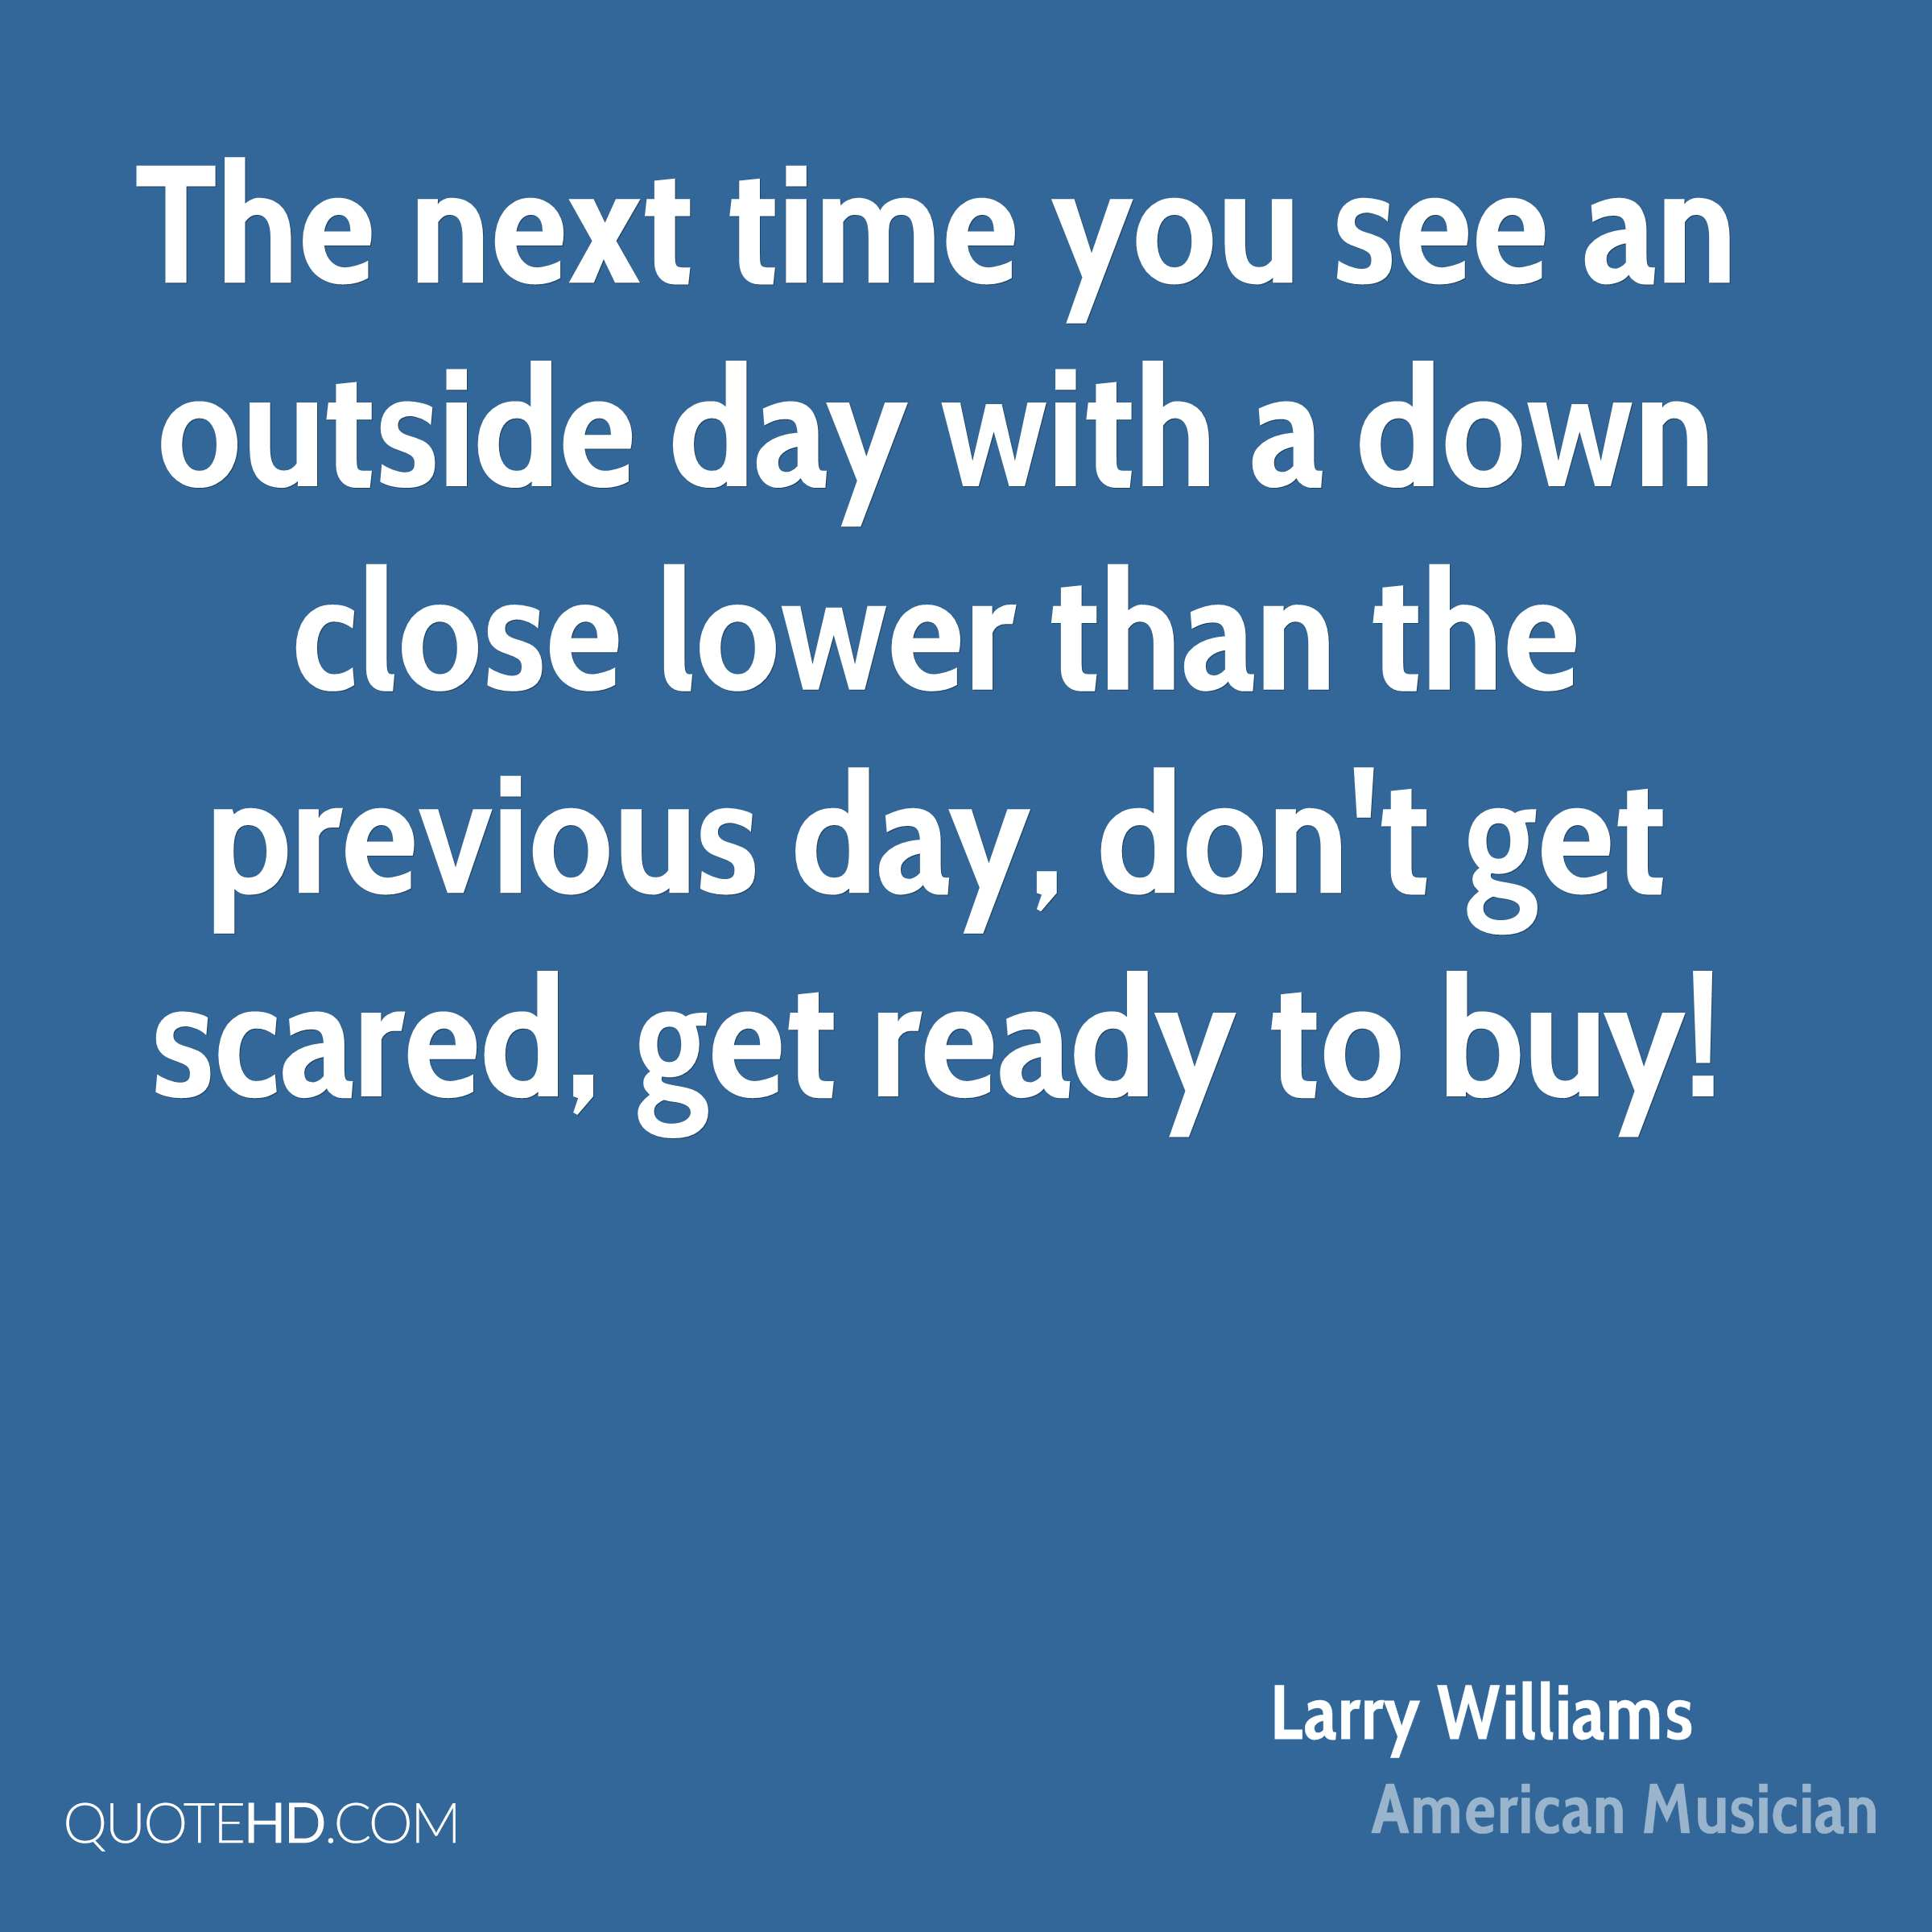 The next time you see an outside day with a down close lower than the previous day, don't get scared, get ready to buy!